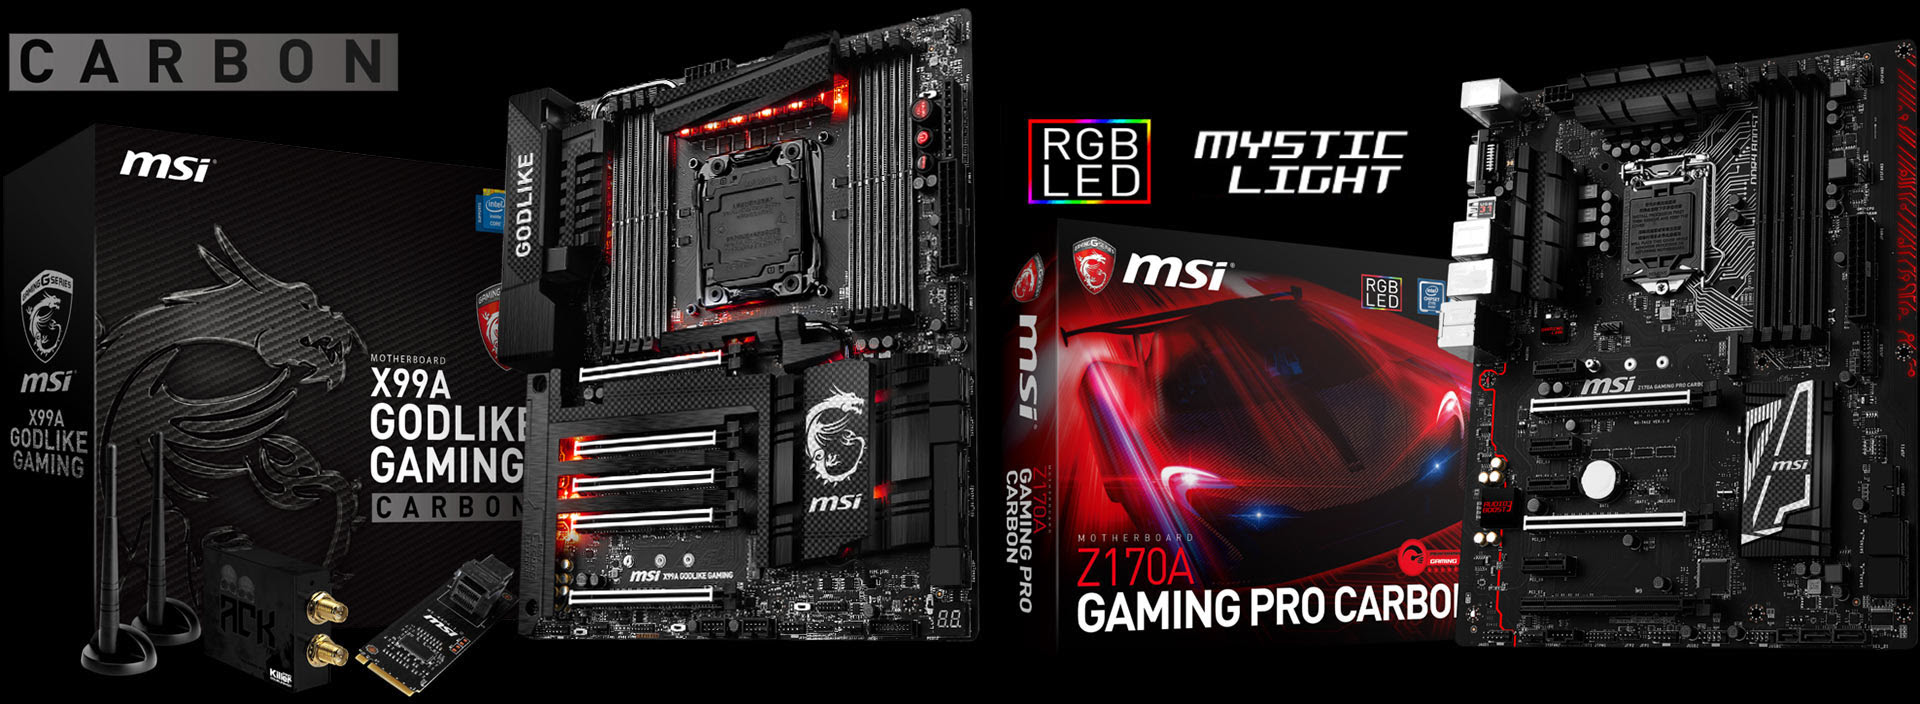 MSI Z170A GAMING PRO e X99A GODLIKE GAMING in edizione Carbon